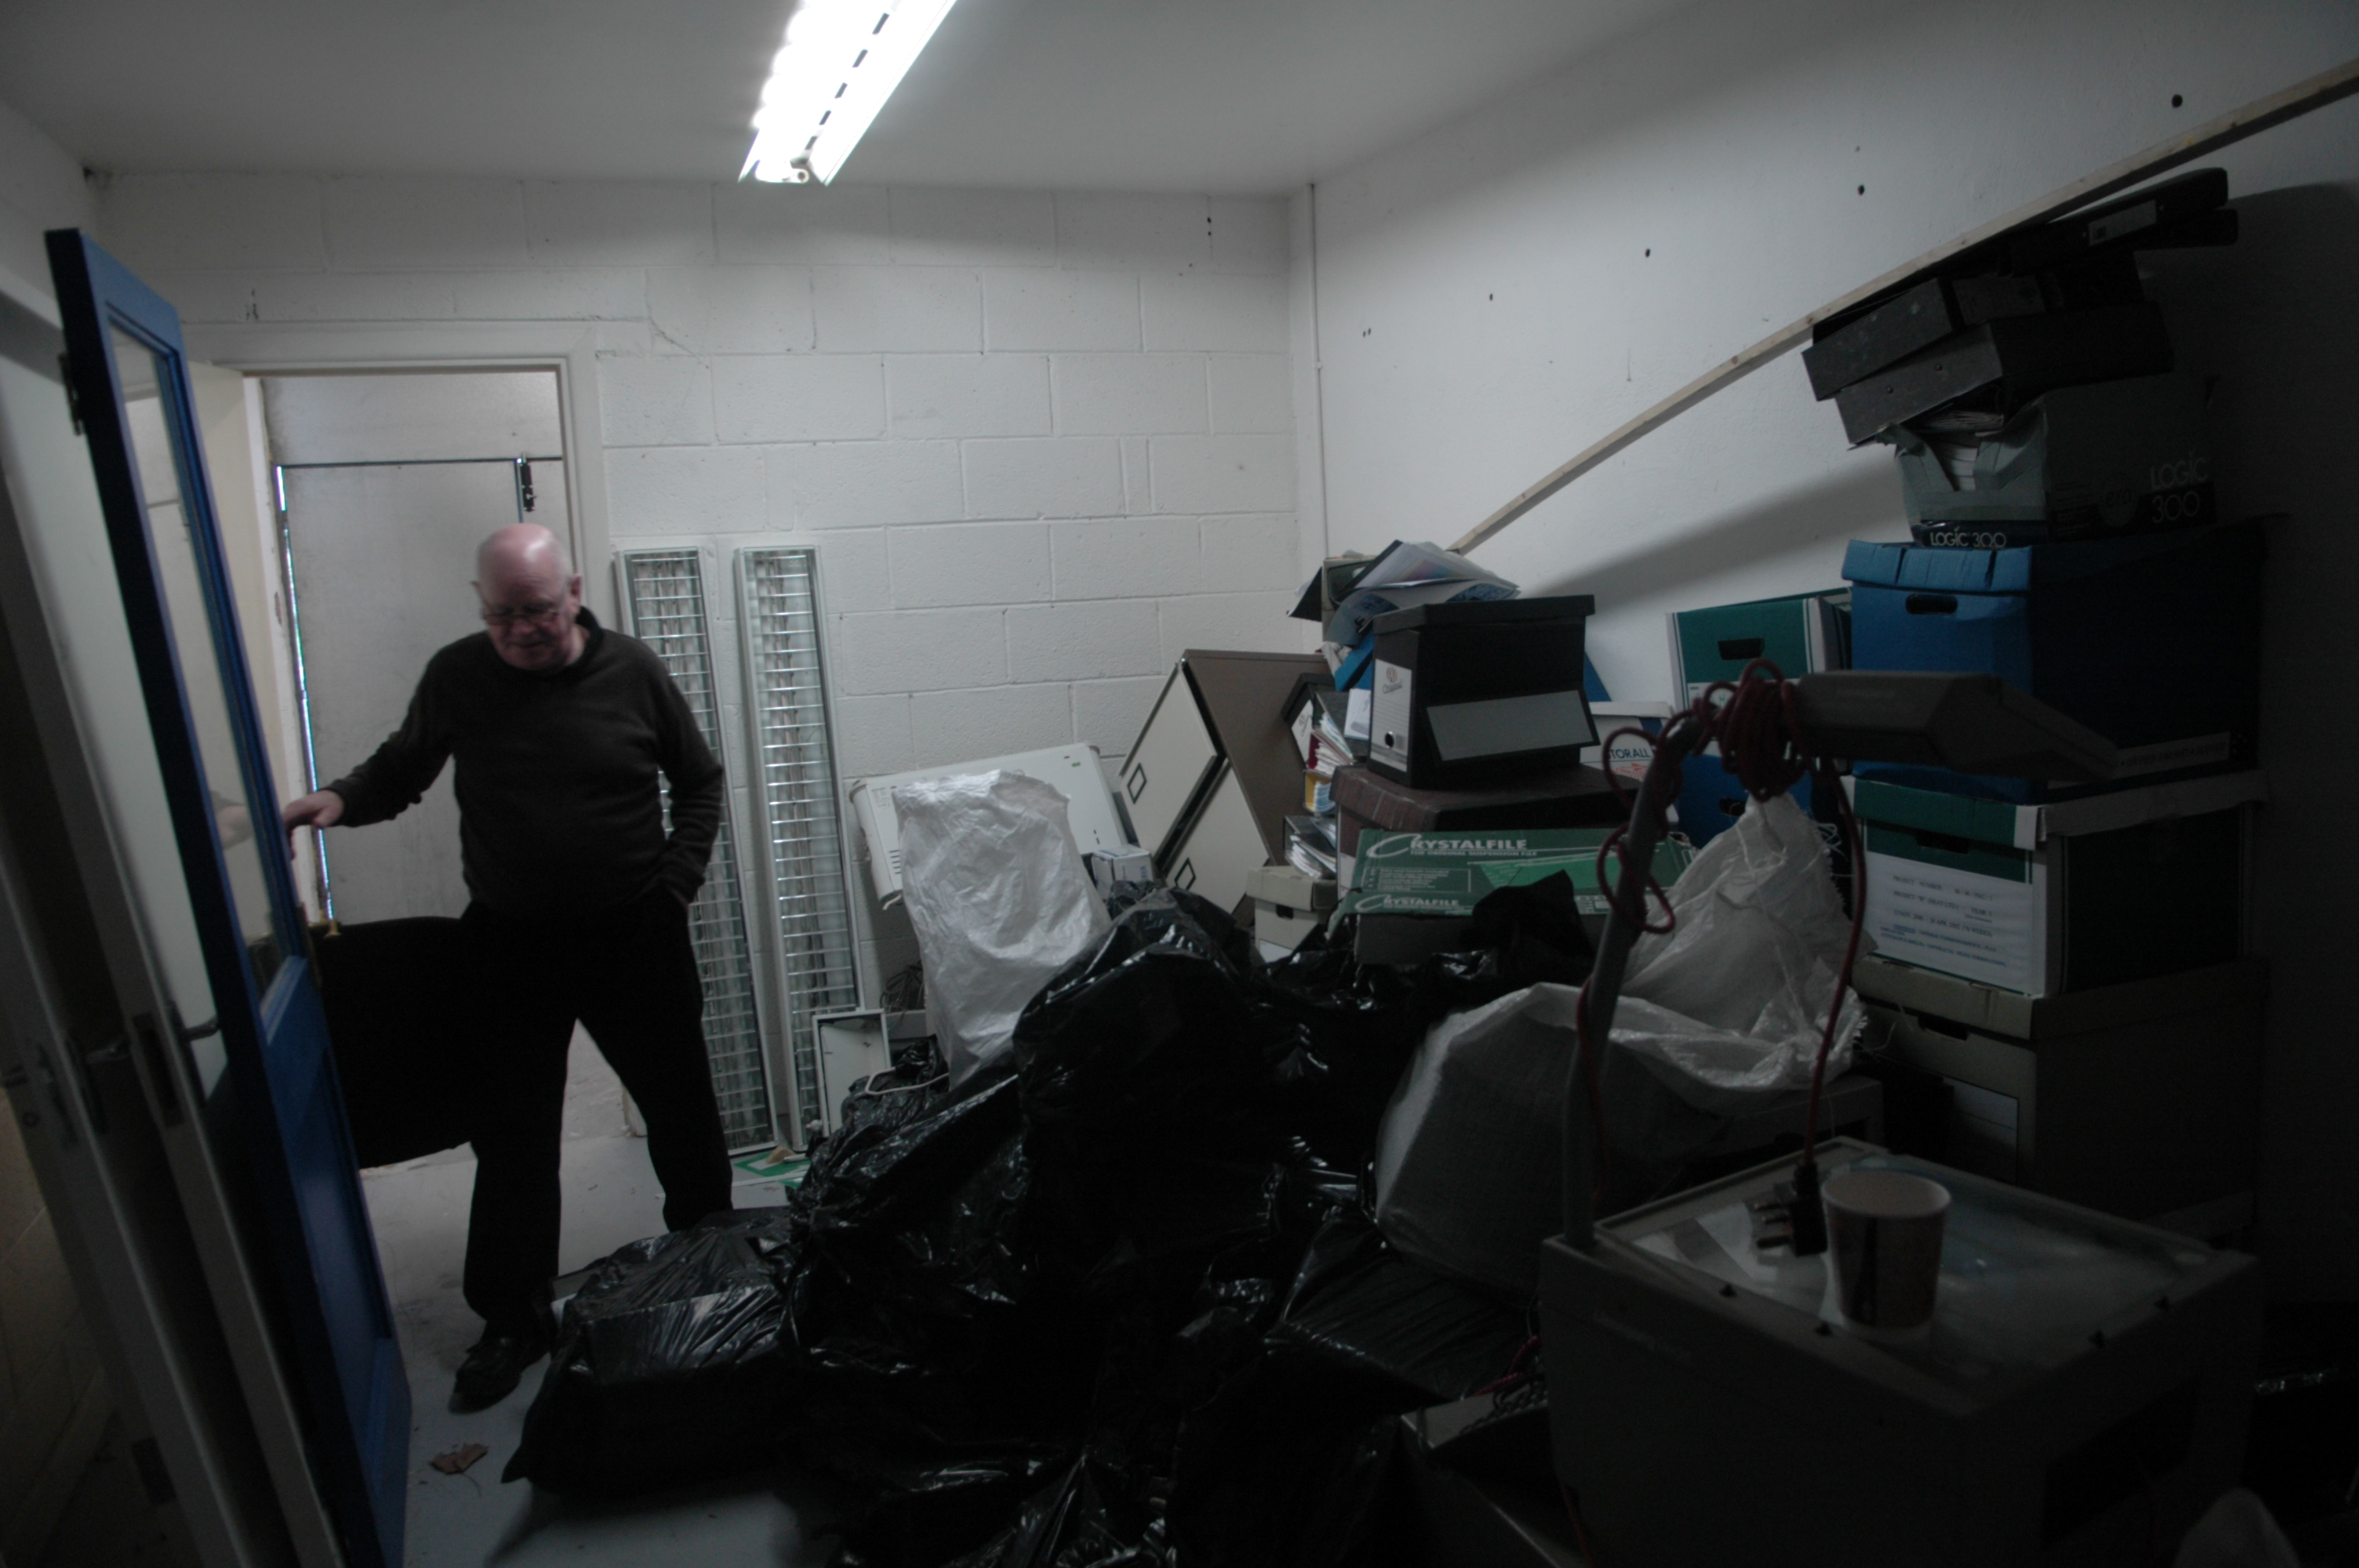 tallaght single men Nine men have appeared in court charged following alleged looting incidents in tallaght, west dublin last night.